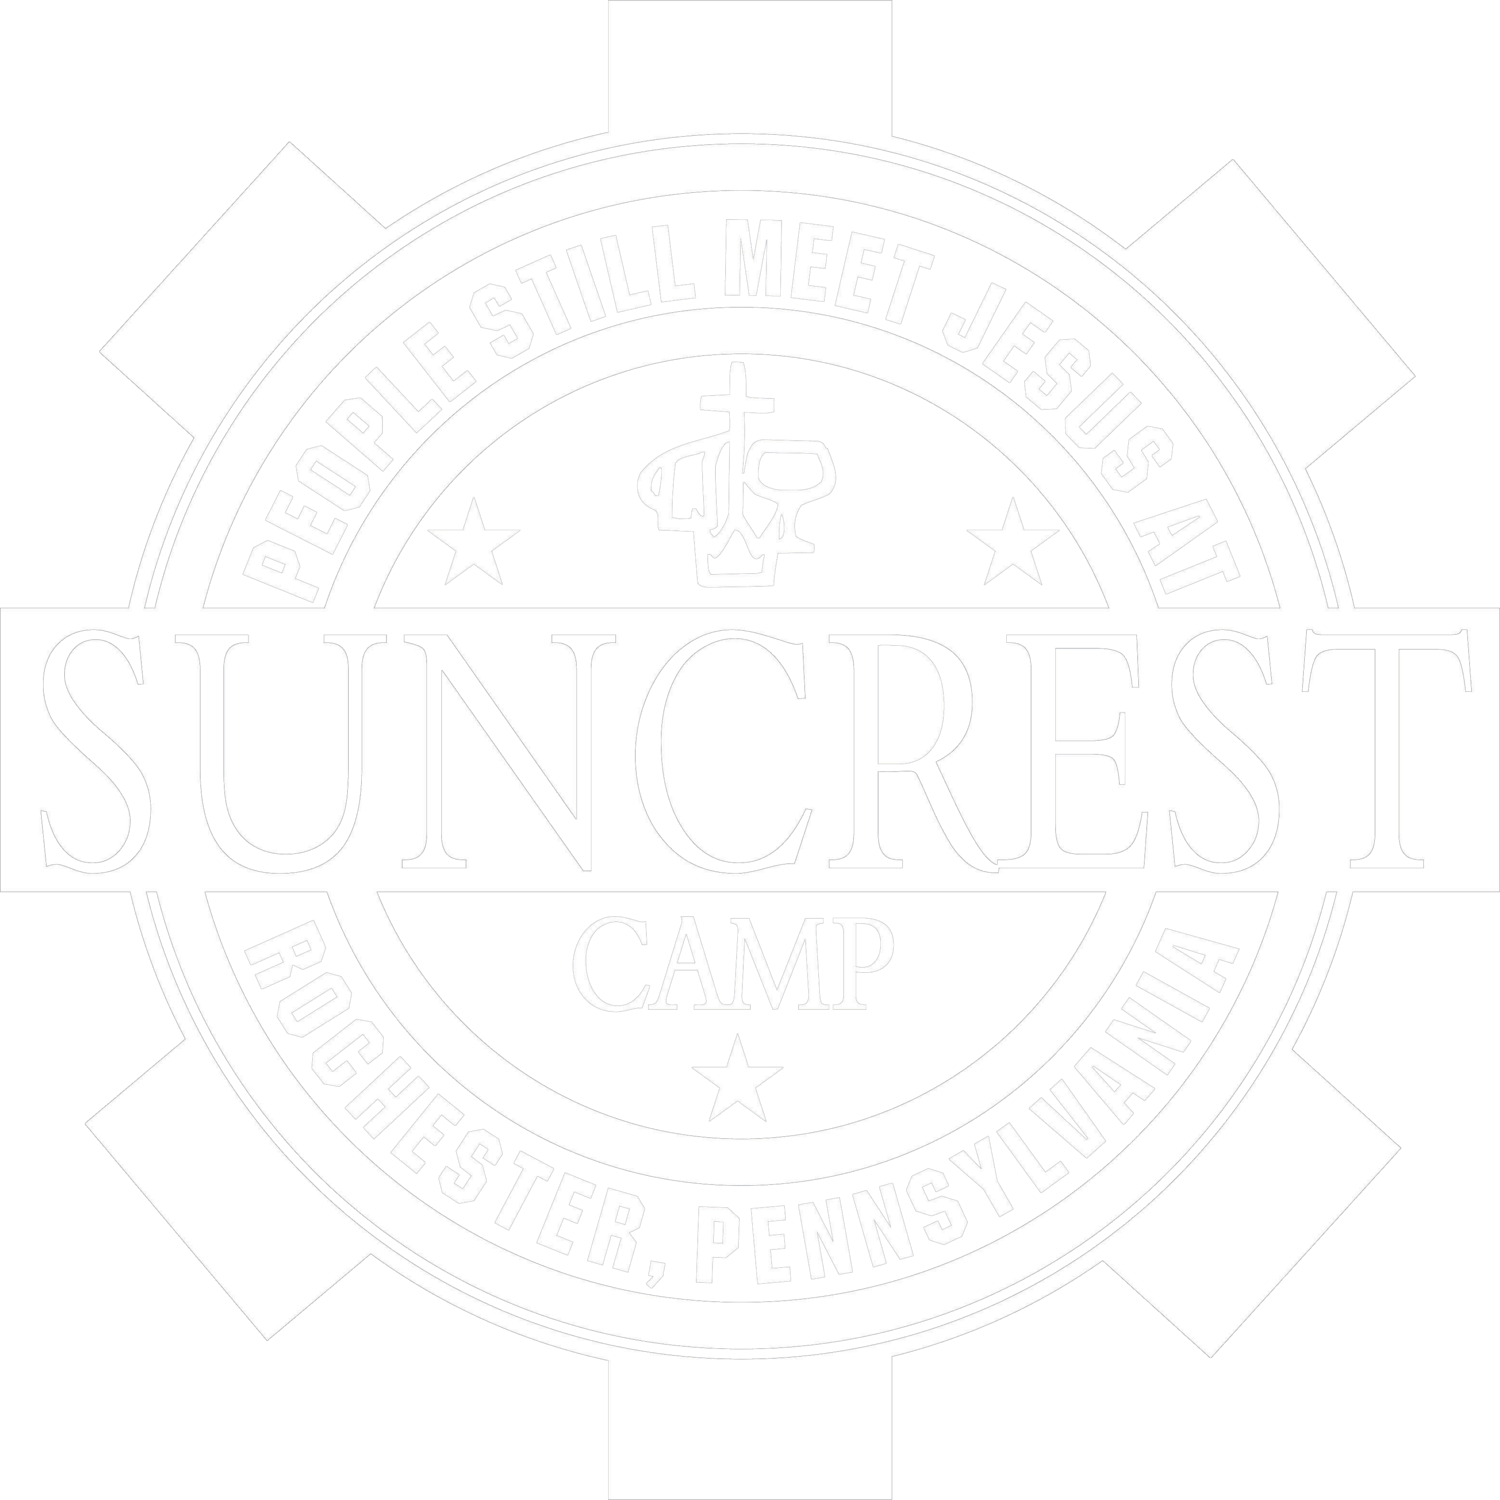 Suncrest Camp